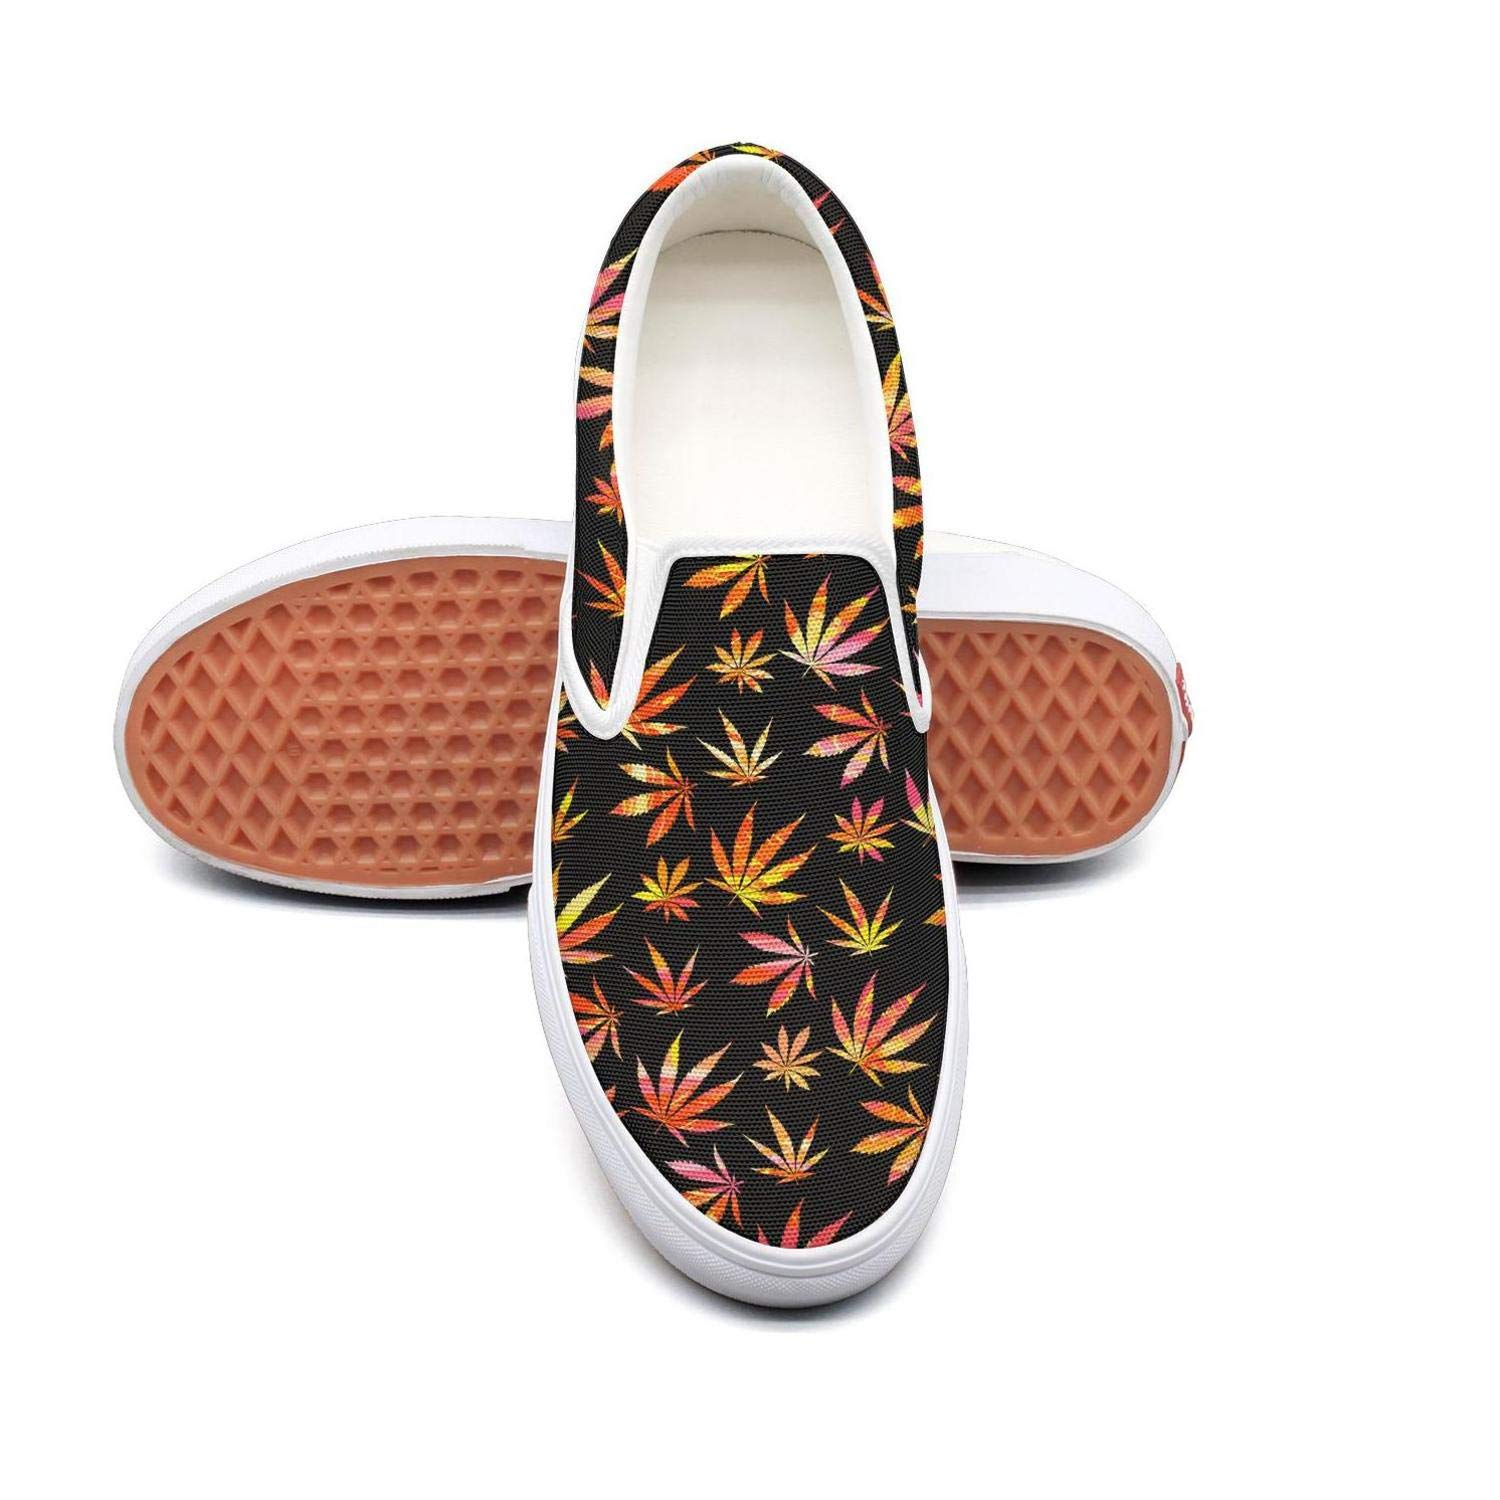 Sernfinjdr Women's Cannabis Leaf Art Fashion Casual Canvas Slip on Shoes Comfortable Golf Sneakers Shoes